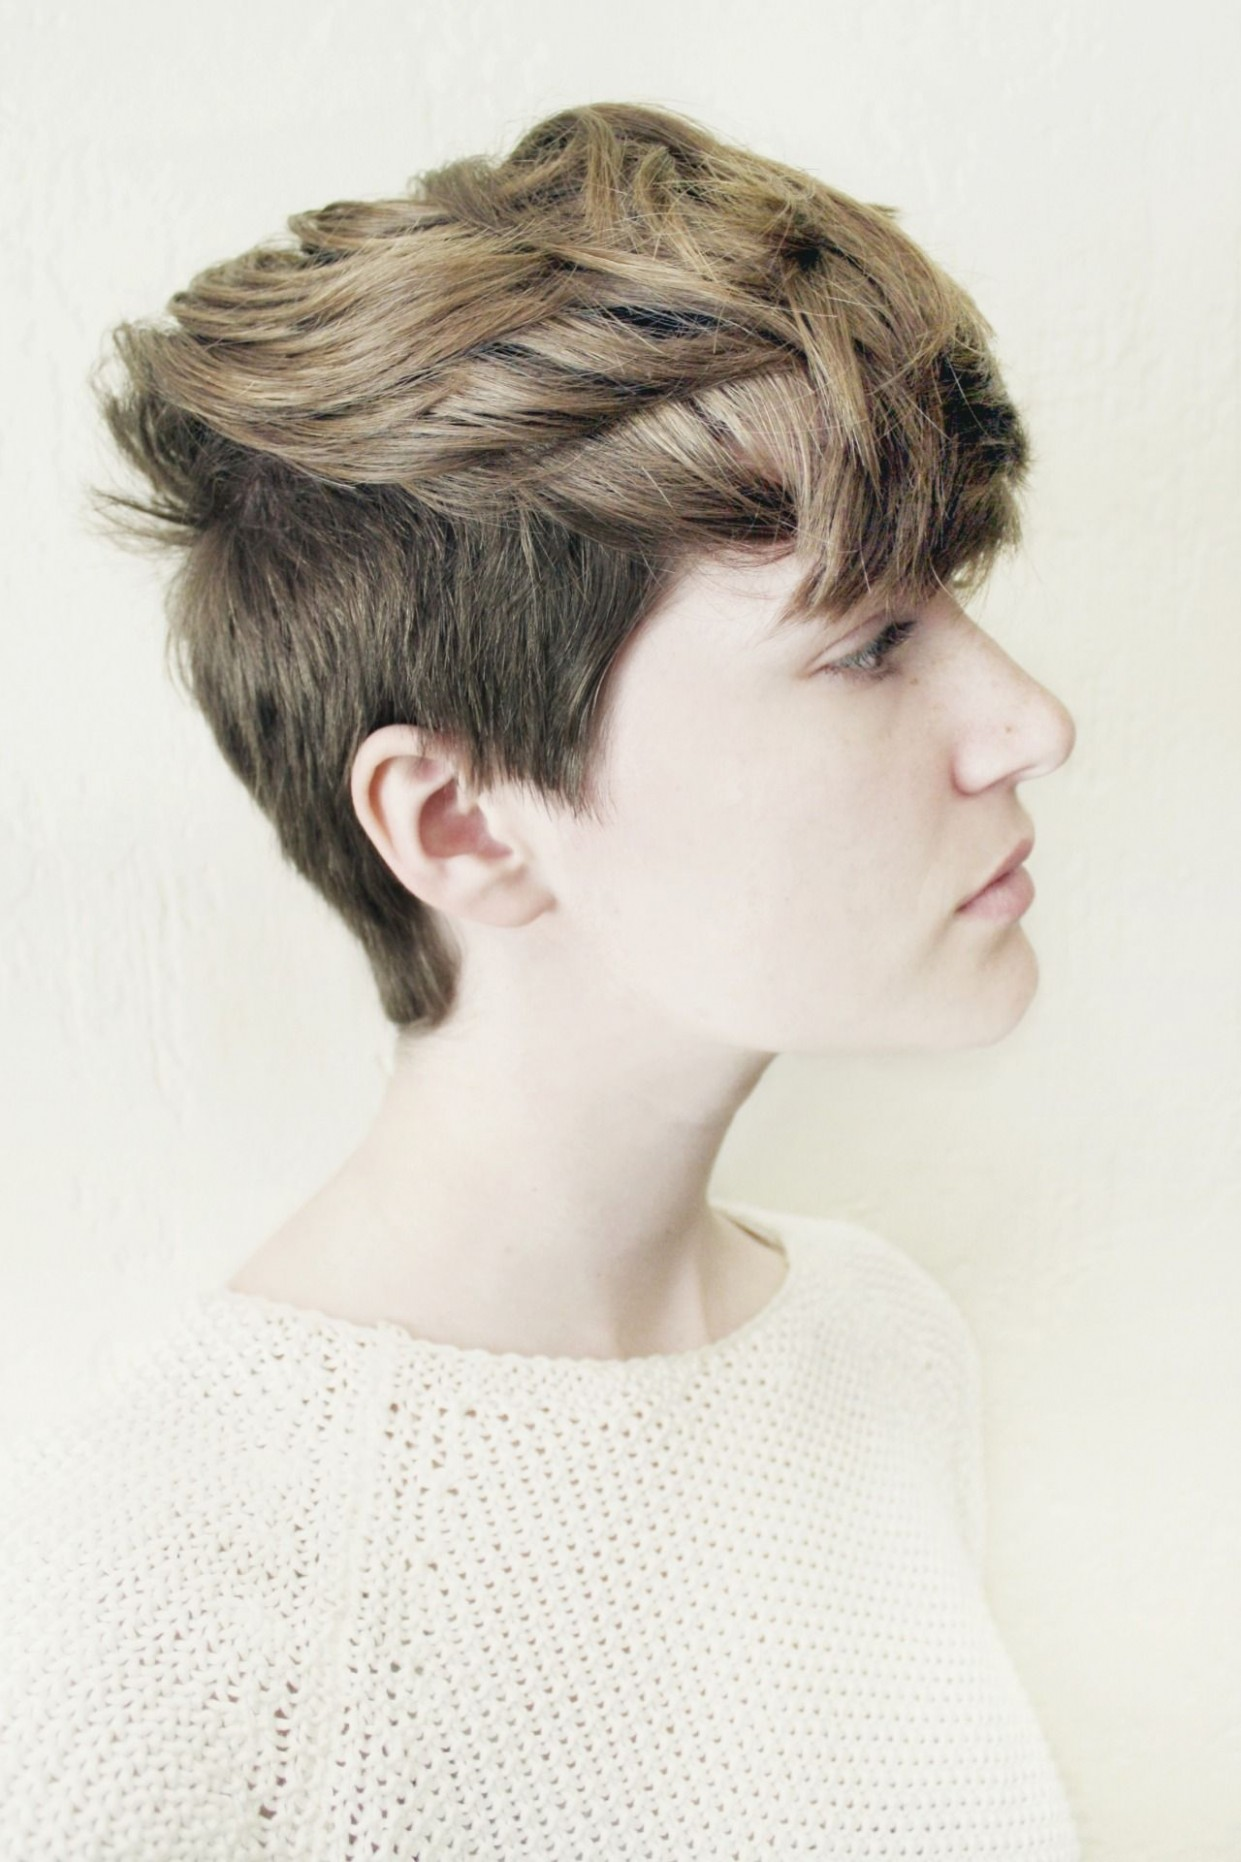 Pixie Cropped  Ftm haircuts, Short hair styles, Androgynous hair